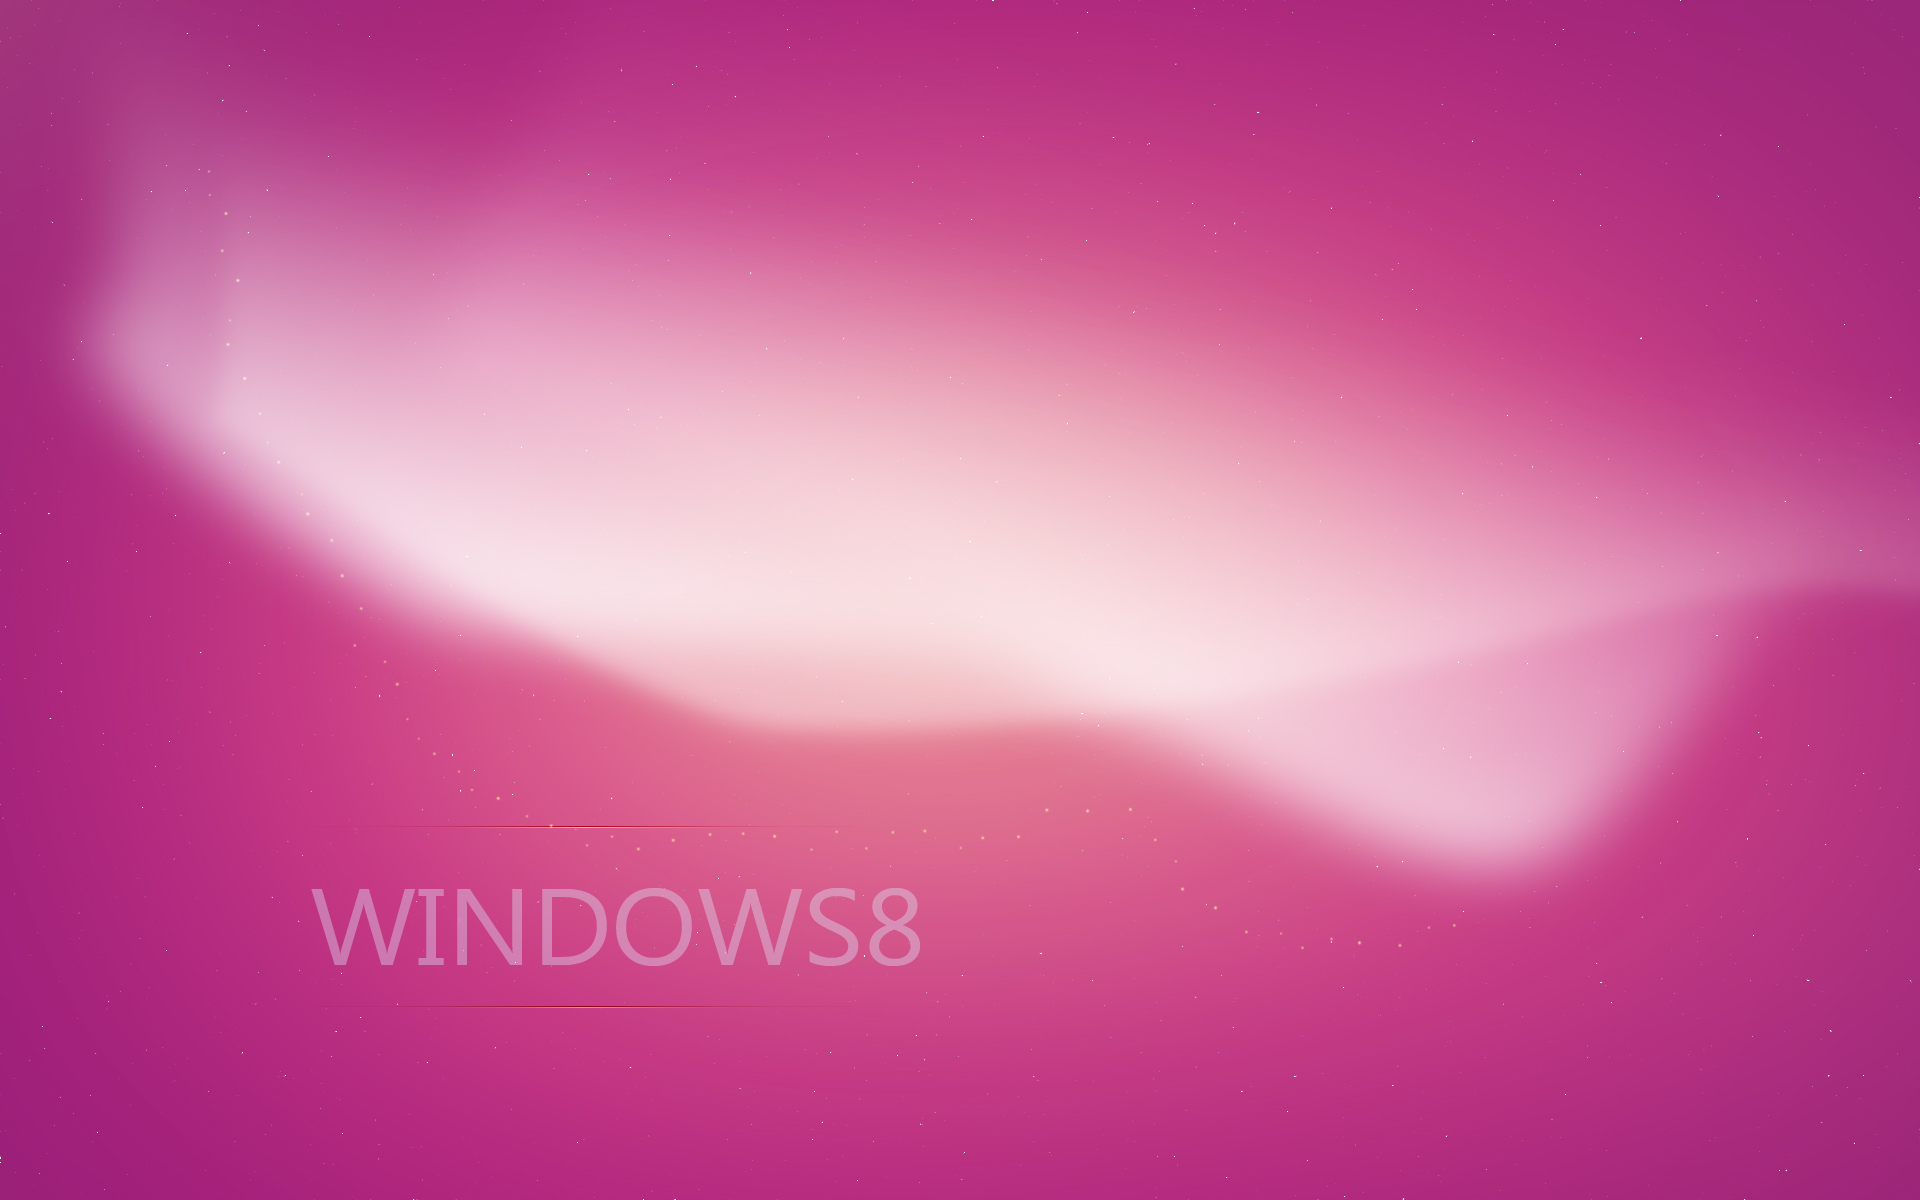 windows8 wallpaper by abdelhakimknis